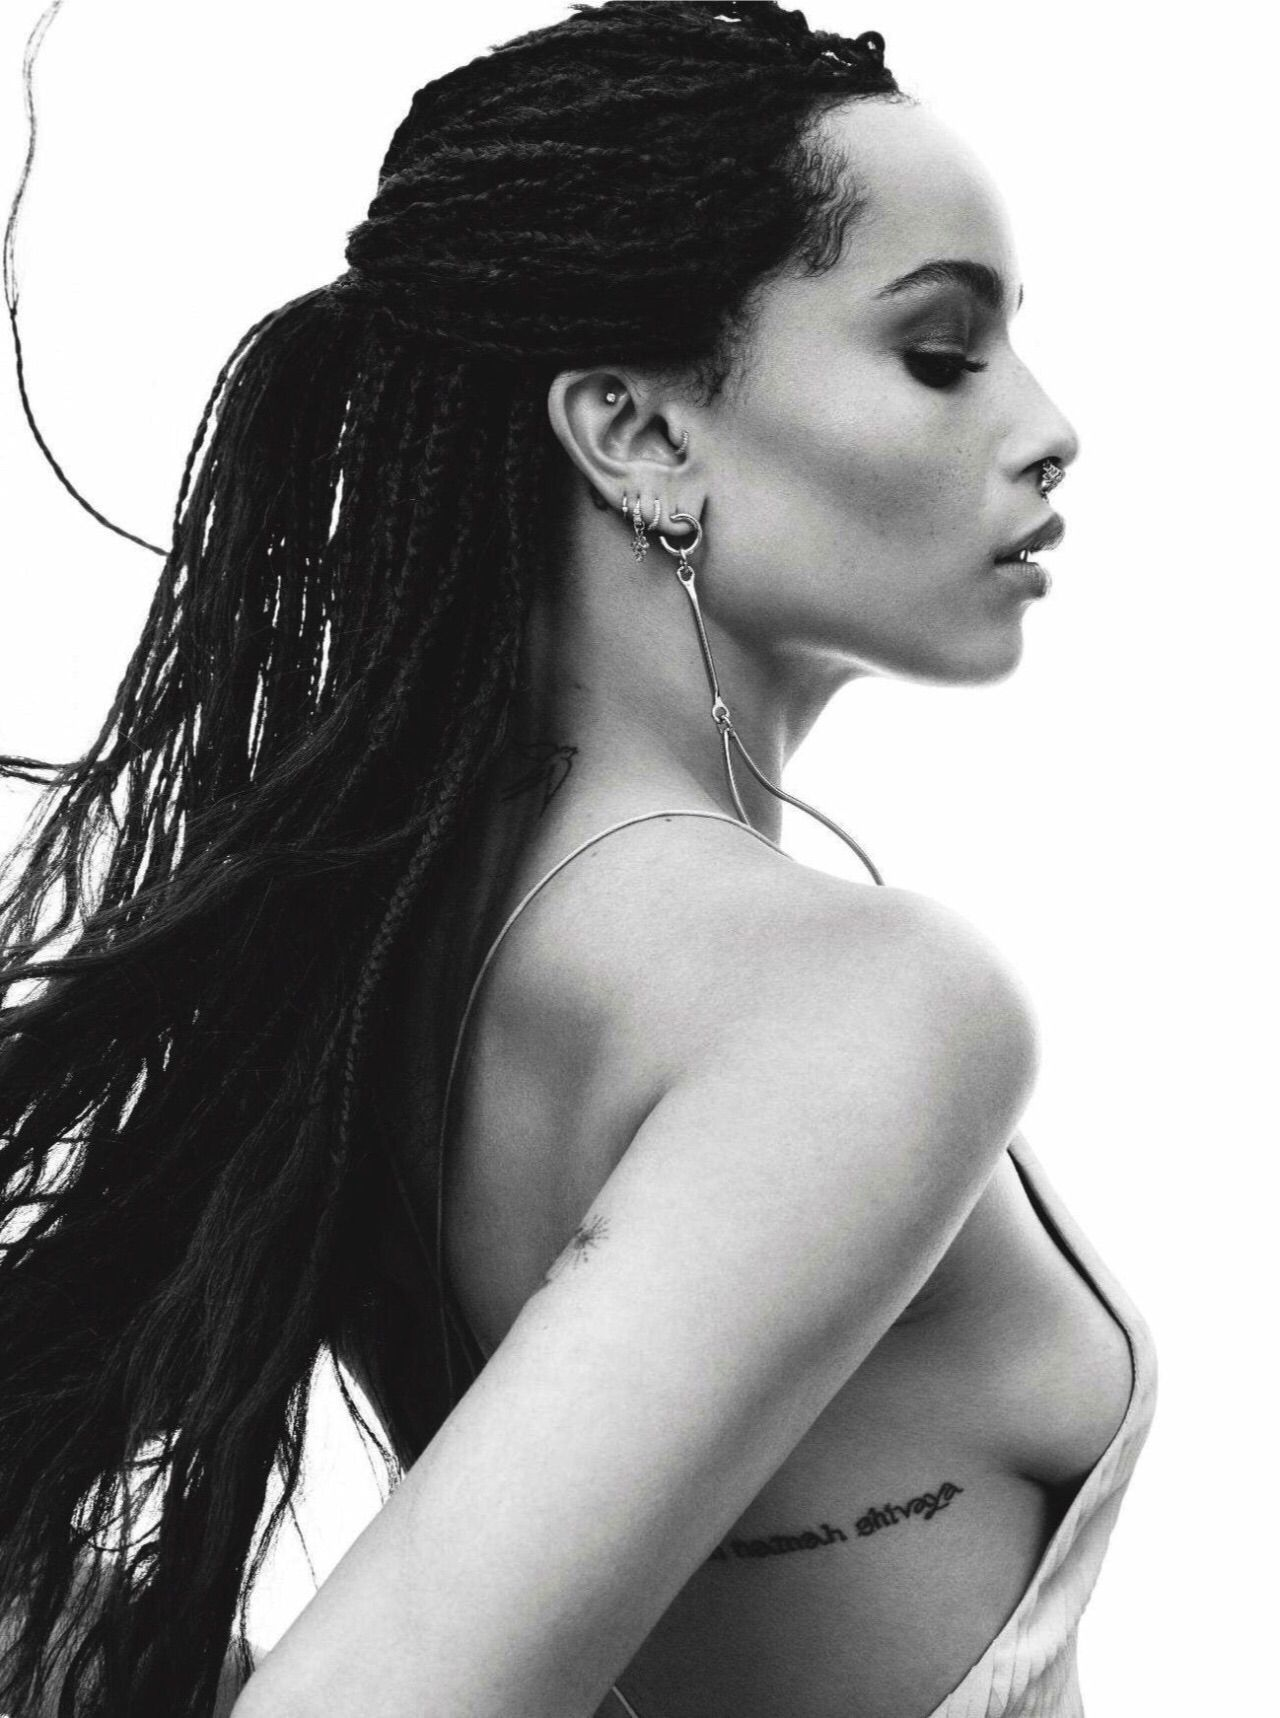 Zoë kravitz for c magazine 2015